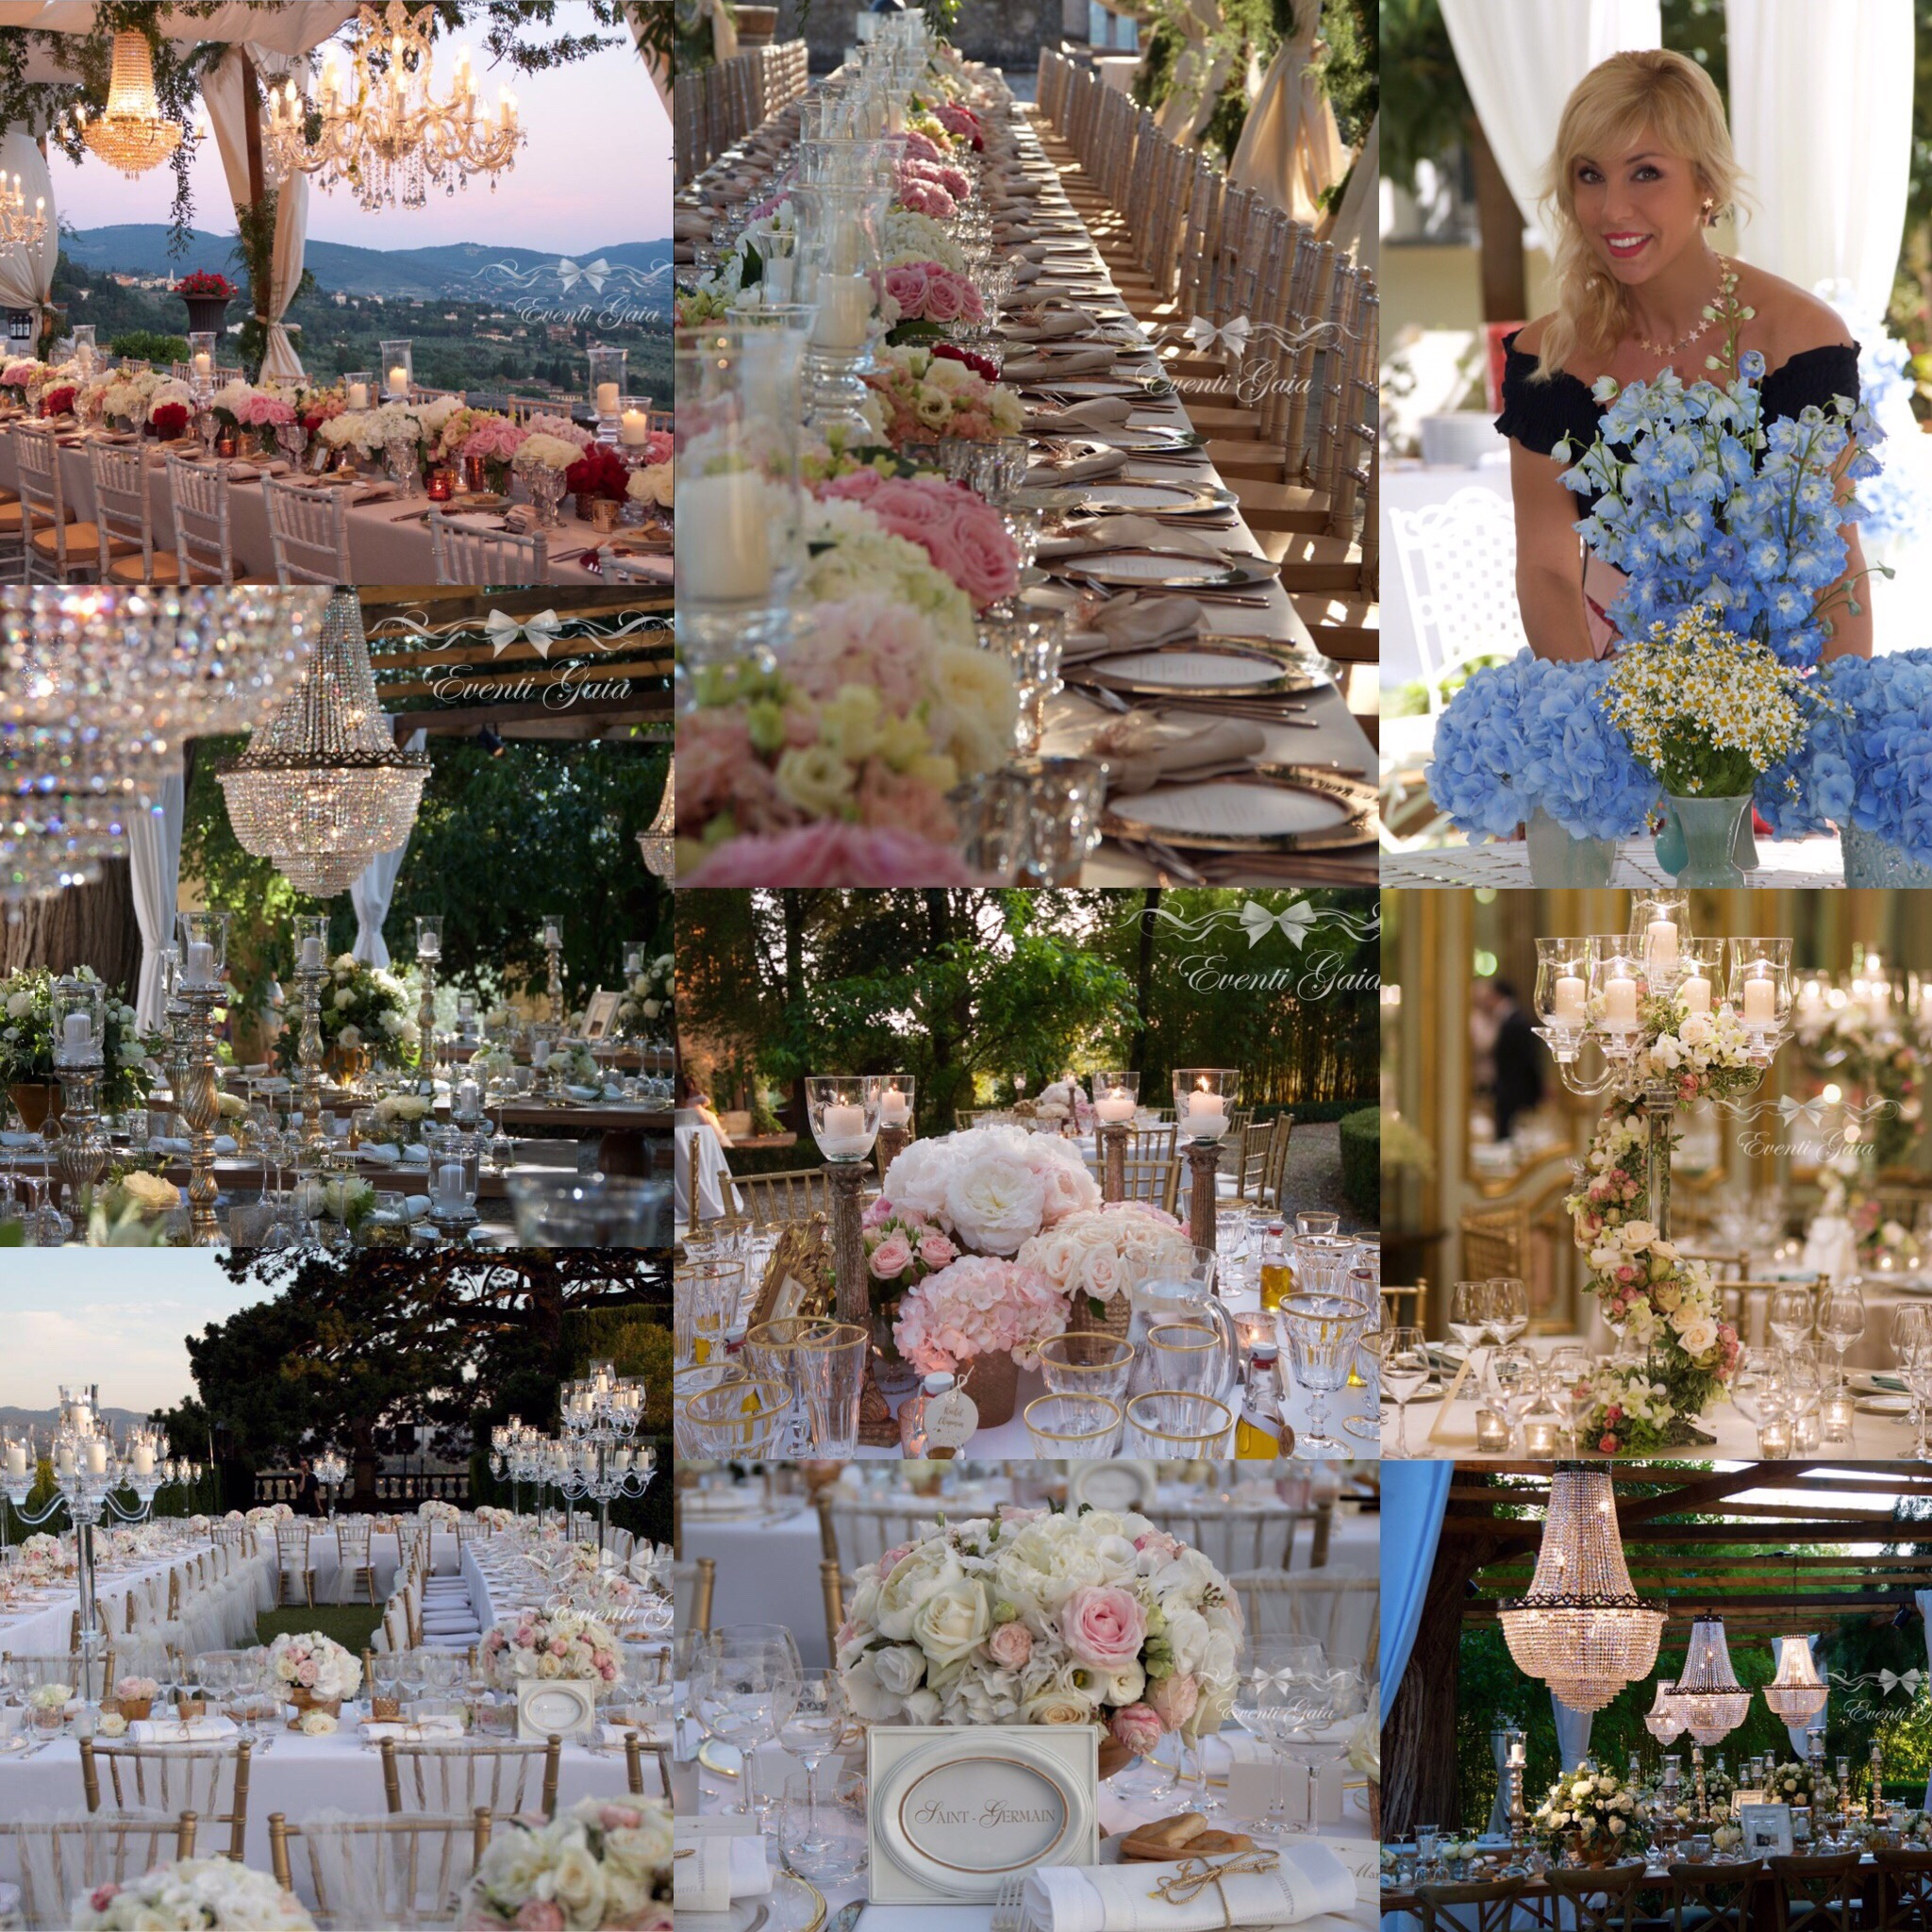 Exclusive Wedding in Italy: EventiGaia Weddings